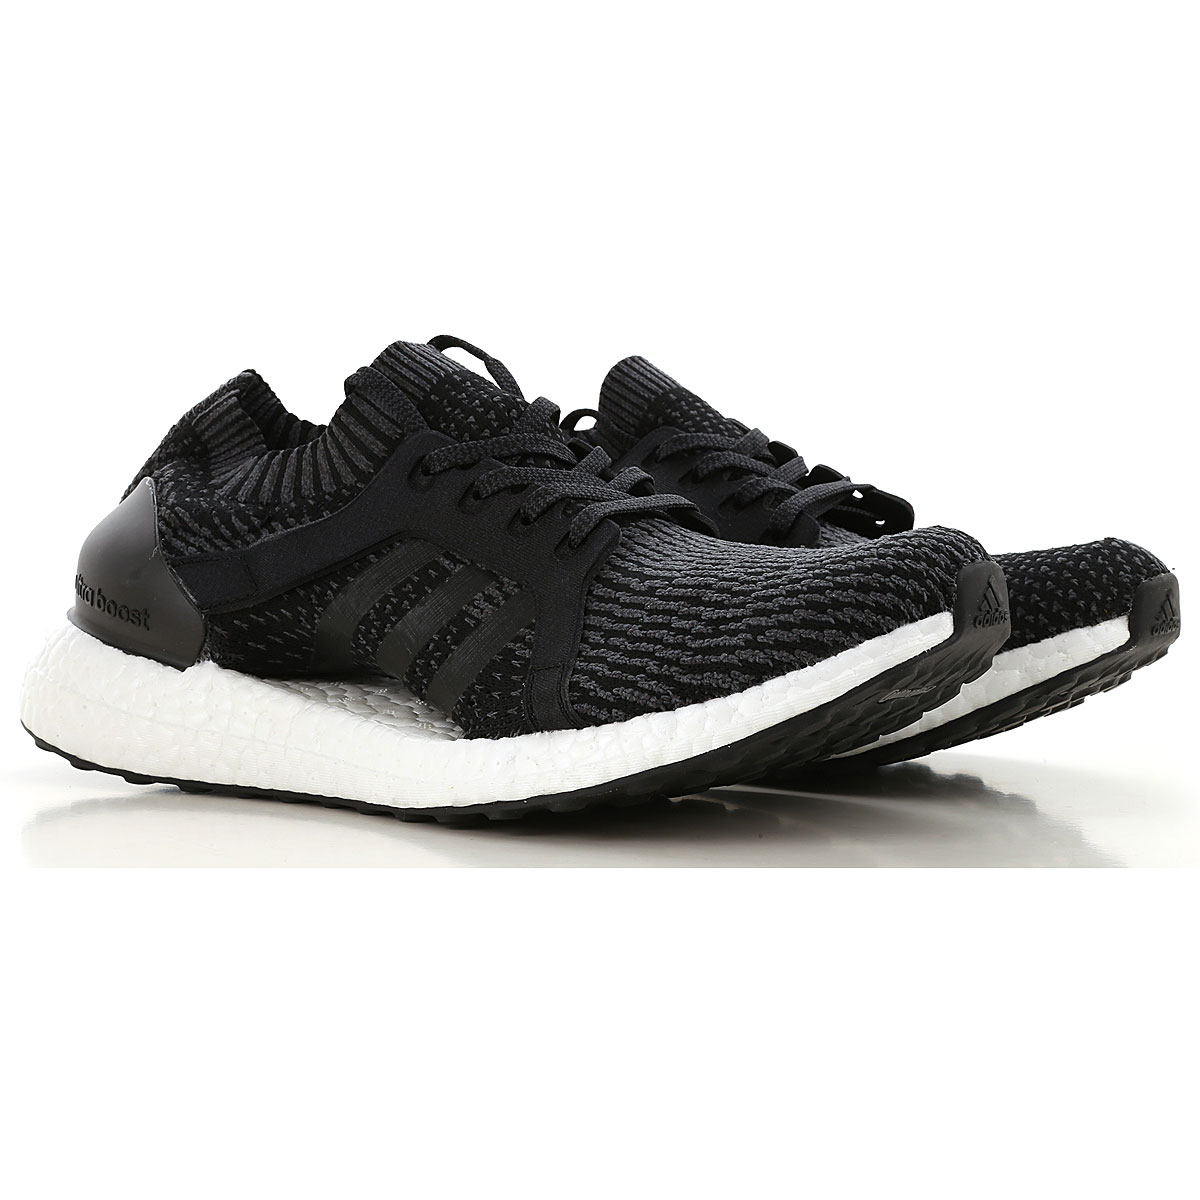 Adidas Sneakers for Men On Sale, Ultra Boost, Anthracite Grey, Fabric, 2017, 7 7 7.5 8 9